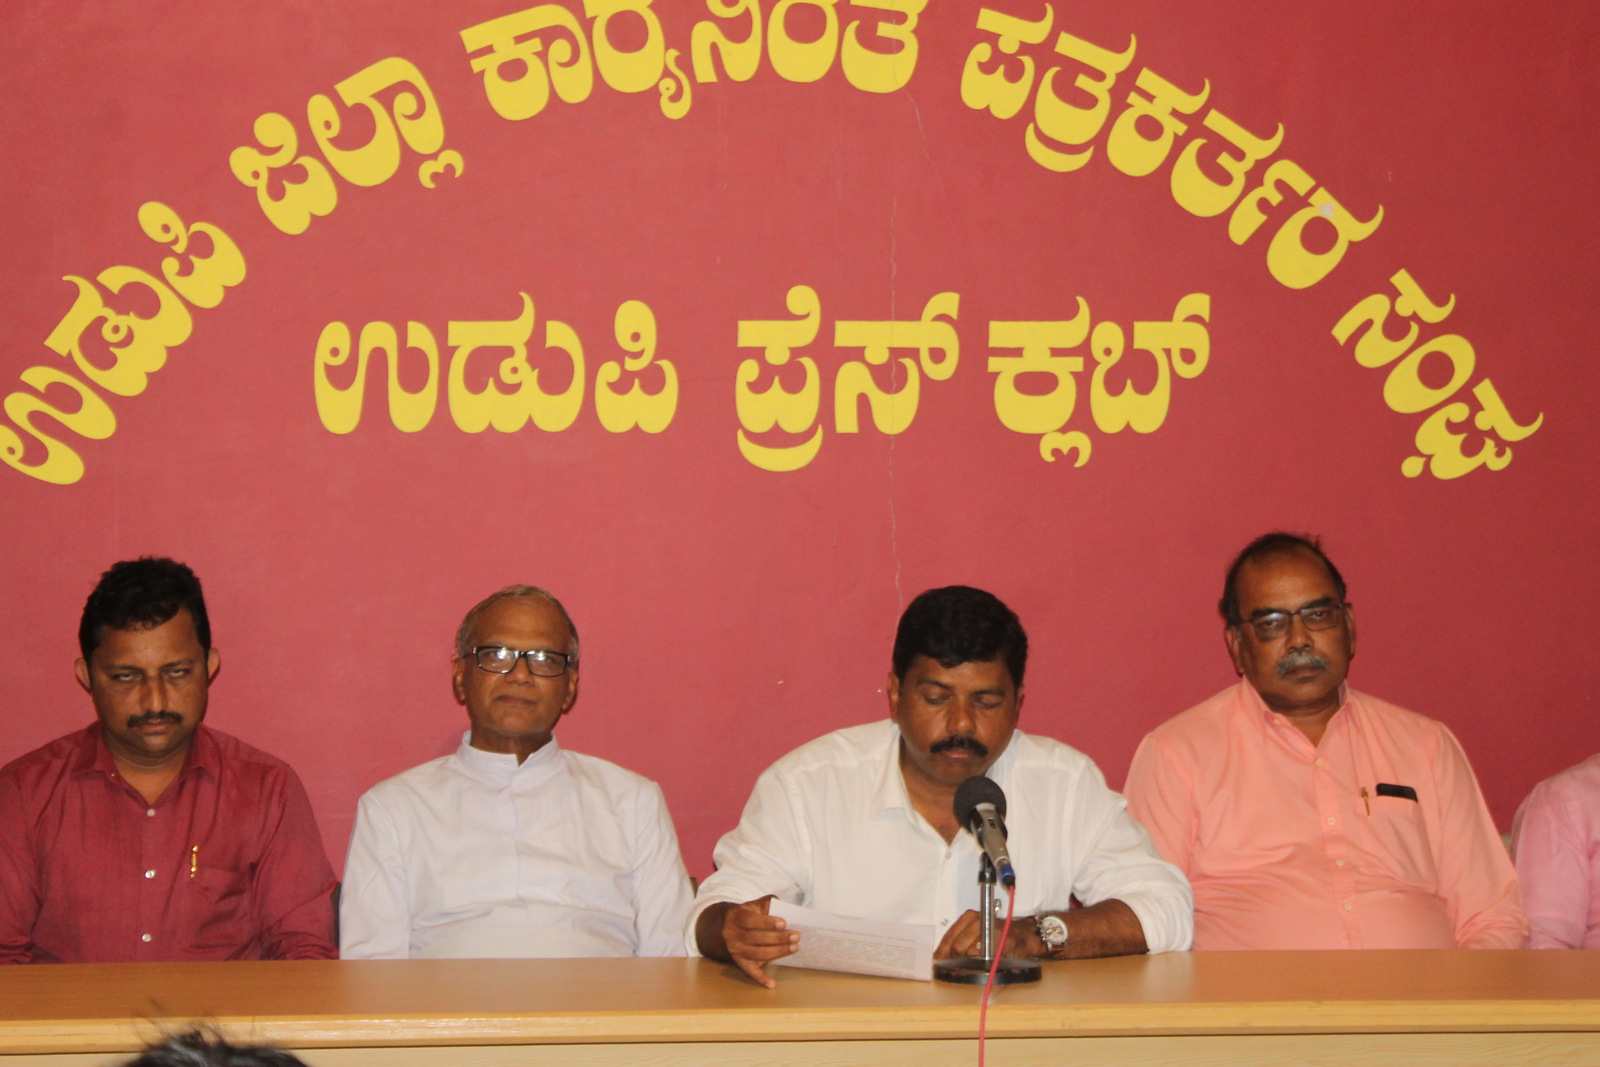 Catholic Sabha Udupi Pradesh to observe